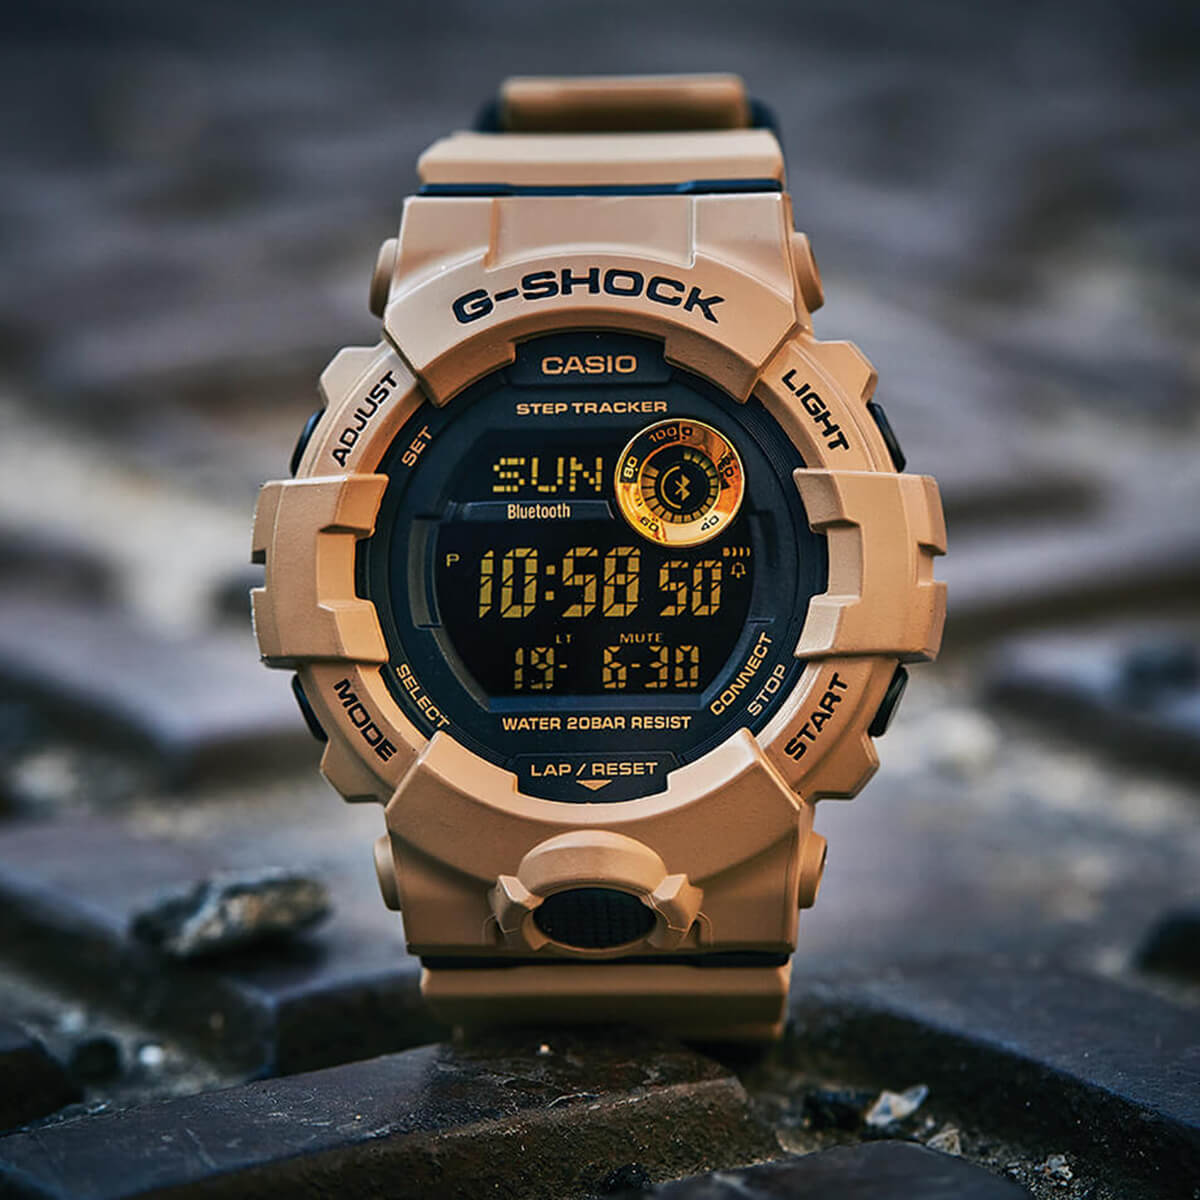 SPRING FORWARD IN STYLE - NEW TIME PIECES ARE LANDING | SHOP G-SHOCK NOW